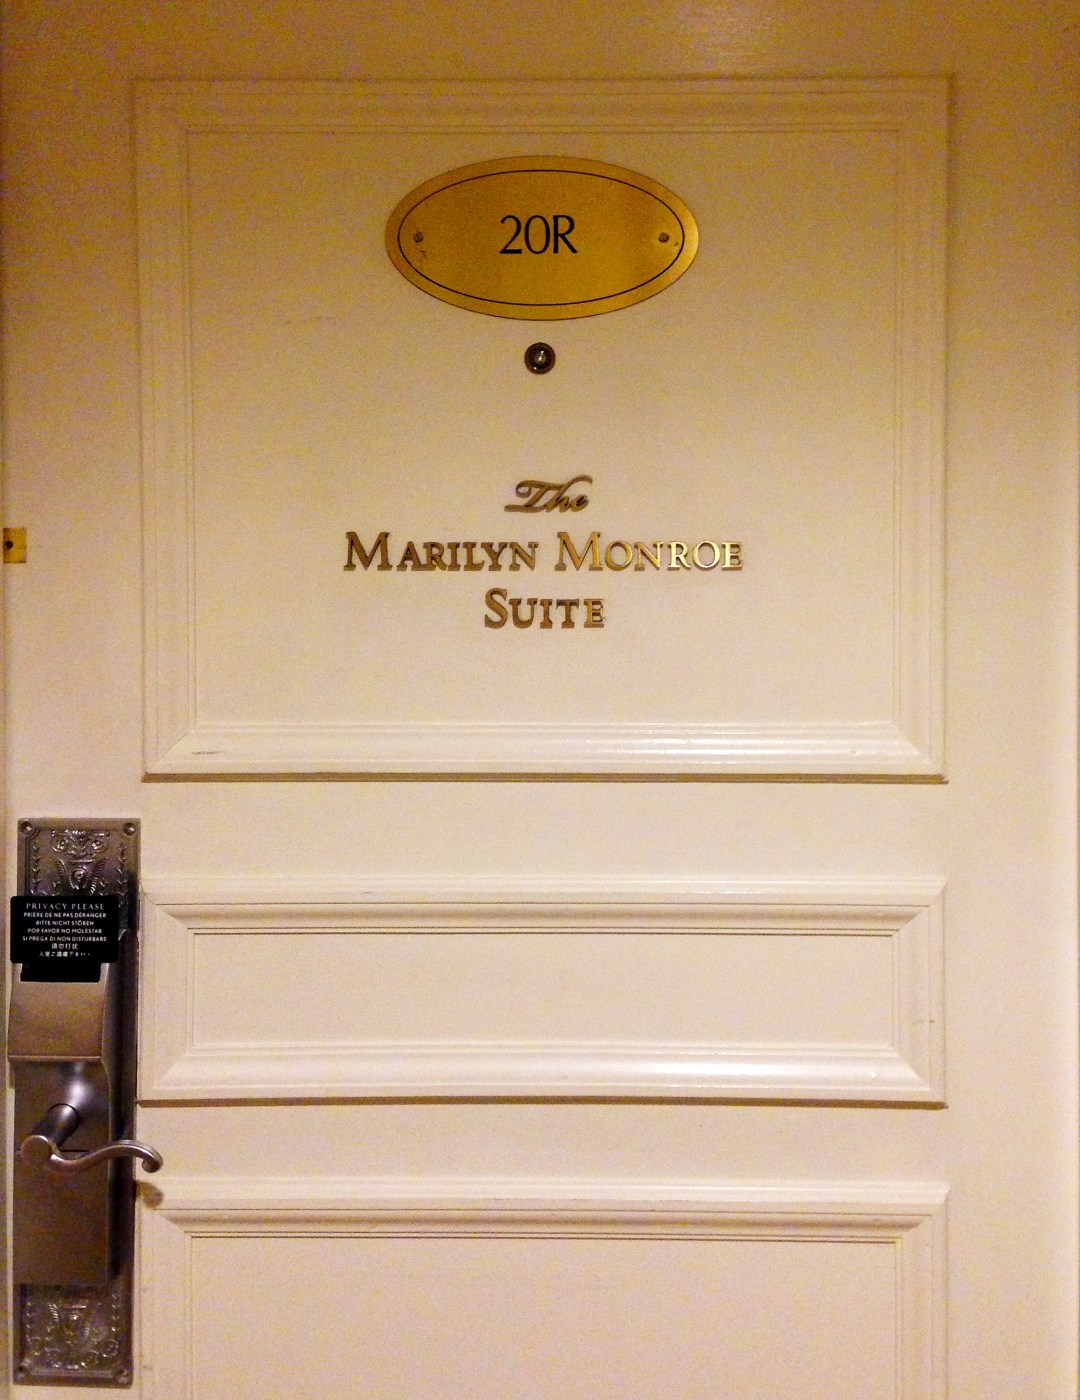 Marilyn Monroe Suite in the Waldorf Astoria Hotel